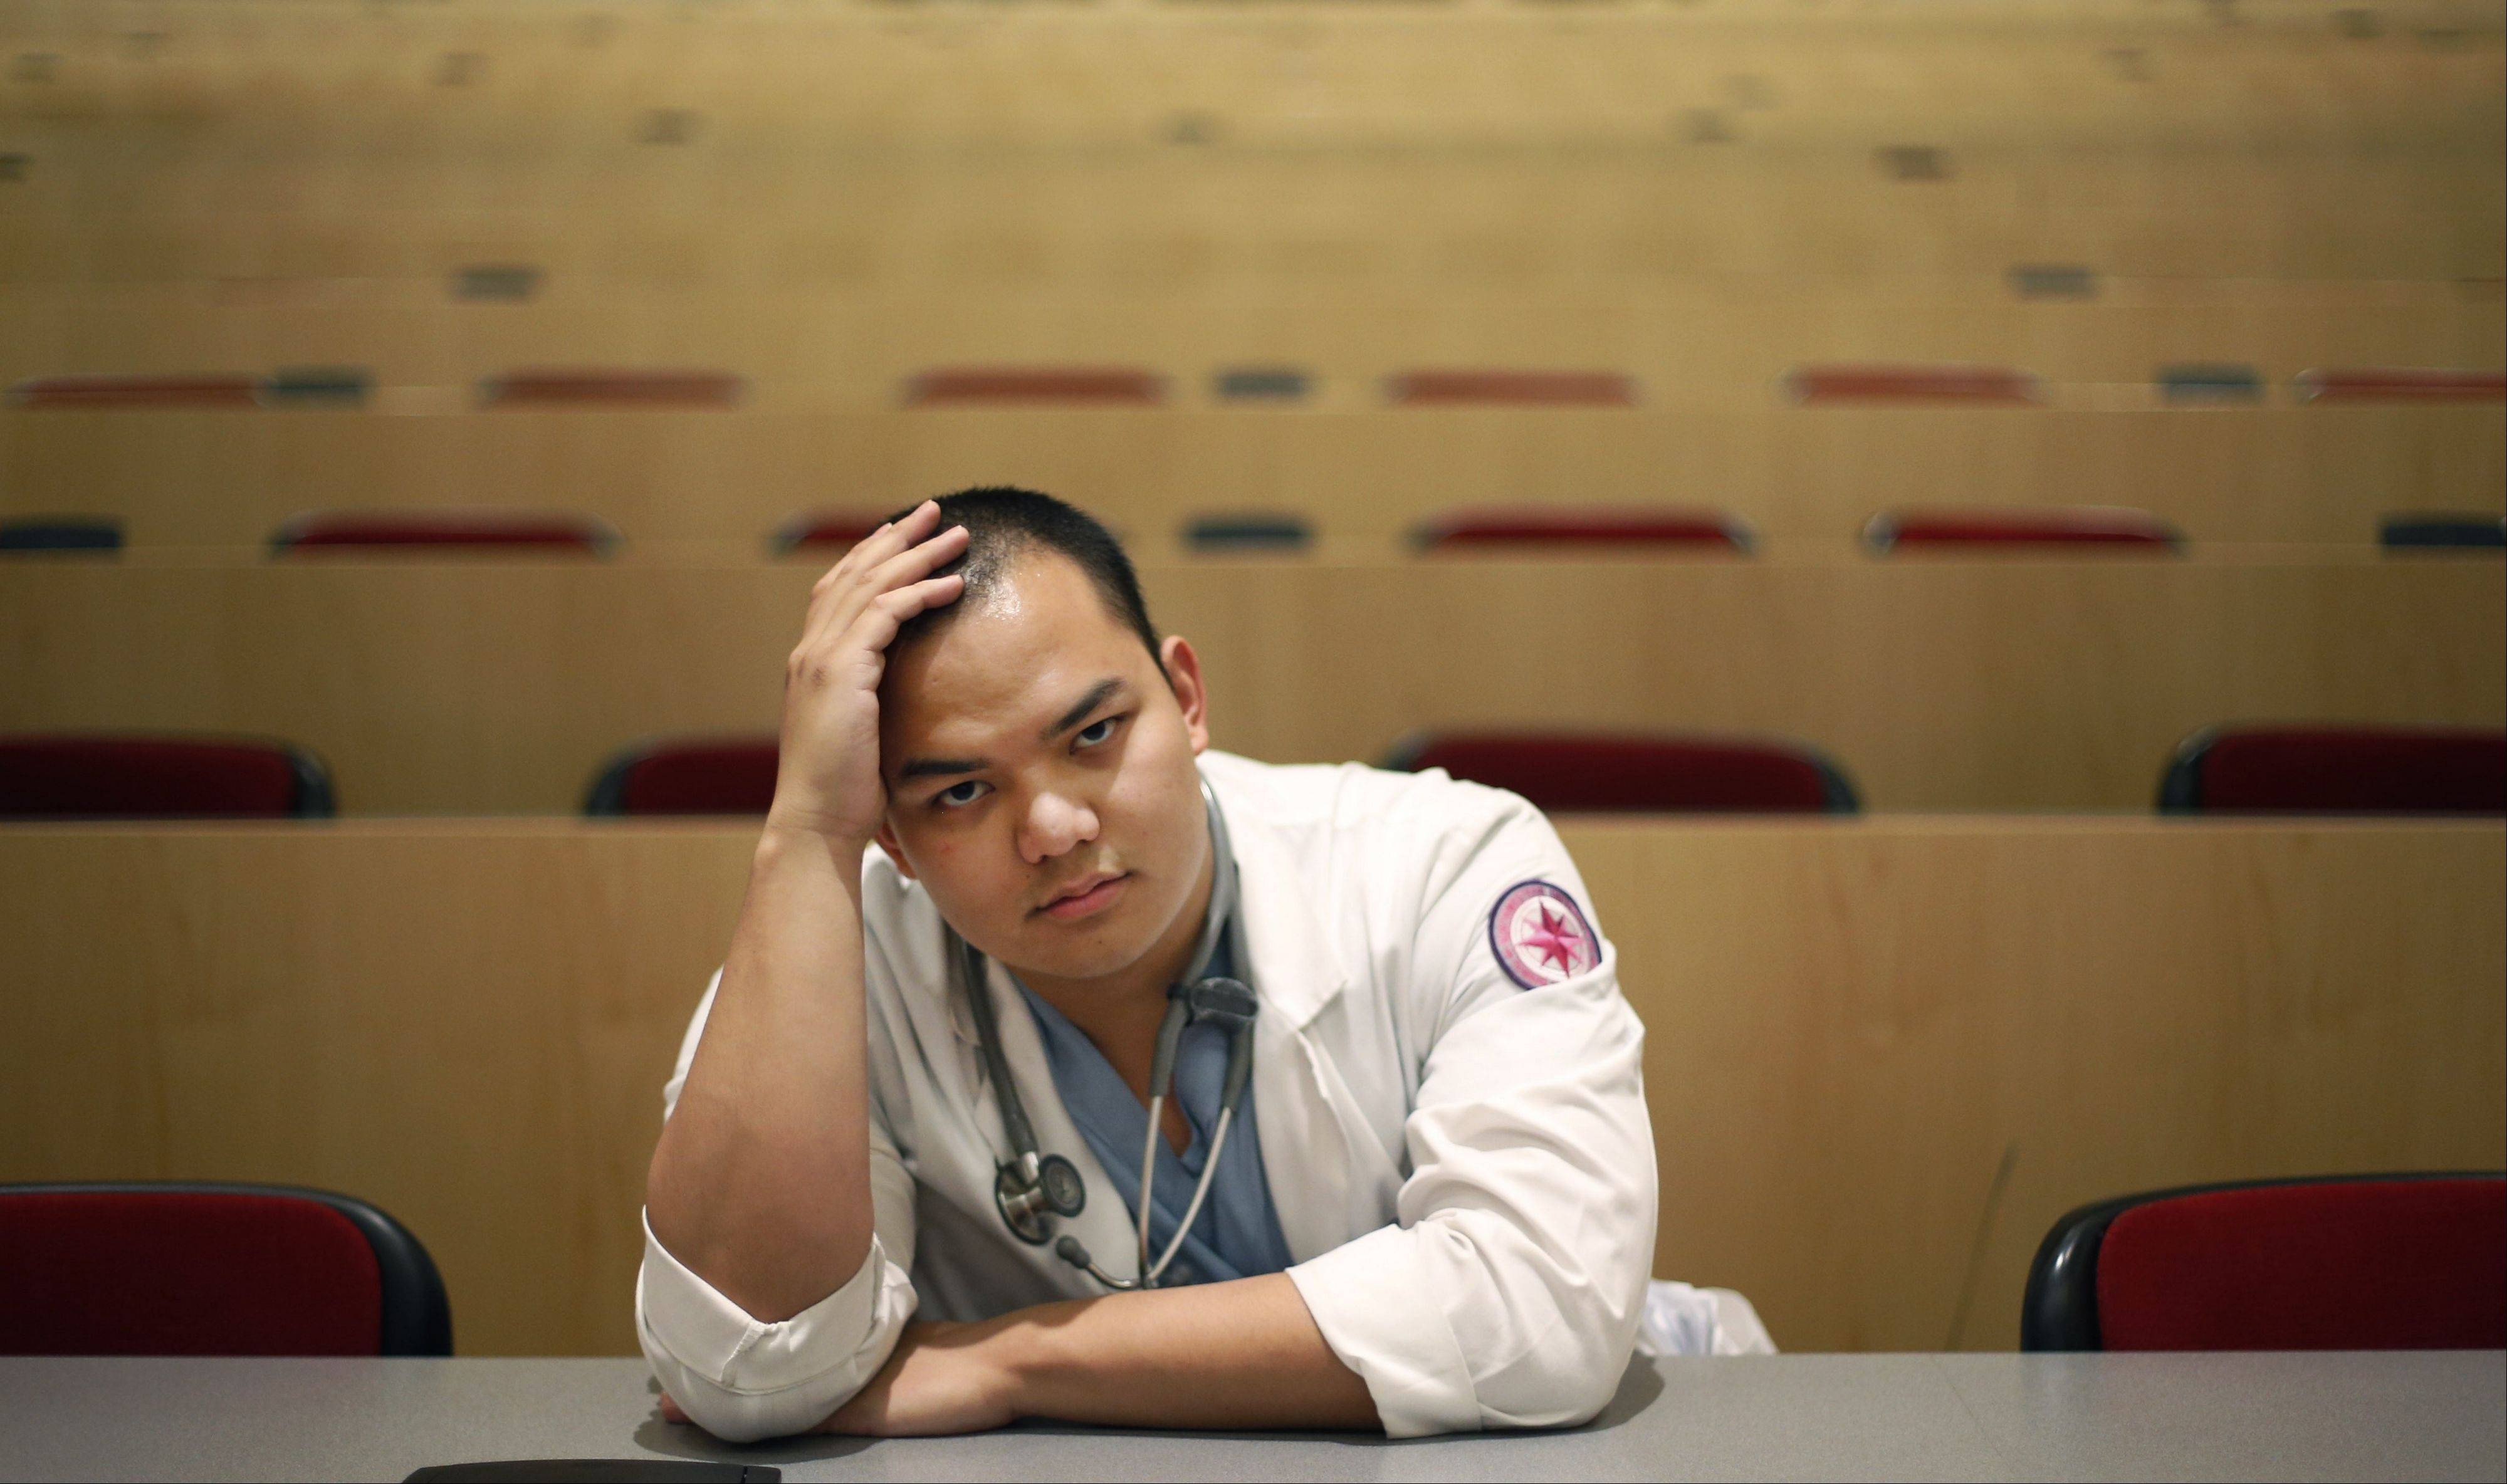 Marc Lim, a senior medical student at Northwestern University�s Feinberg School of Medicine, poses in a campus classroom Tuesday in Chicago. Hundreds of medical students like Lim may not be able to start their residency programs in Illinois this summer because of imminent licensing delays.